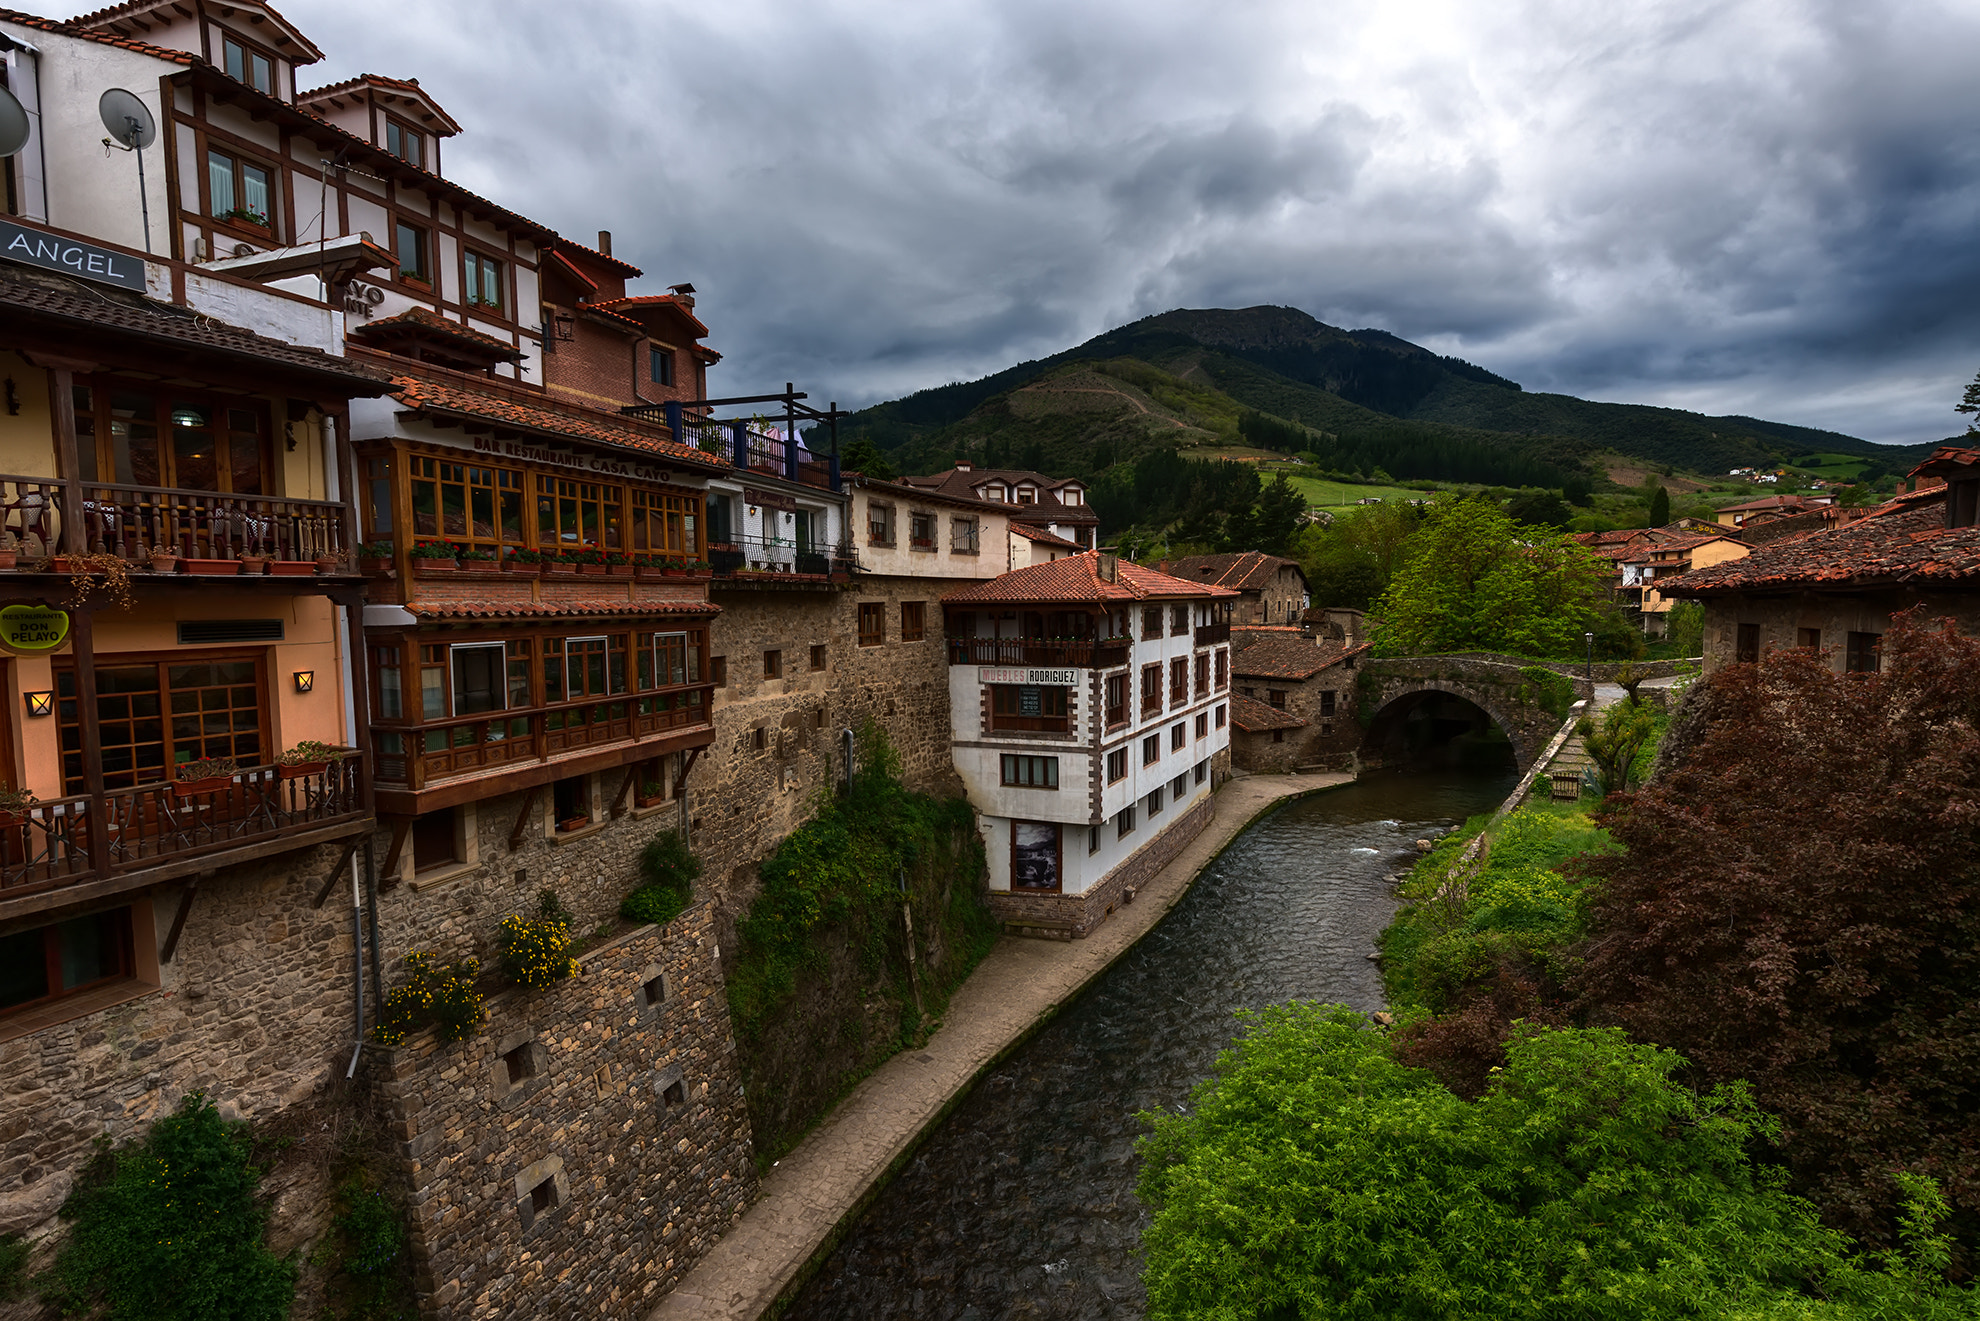 Photograph Potes by Jorge Orfão on 500px